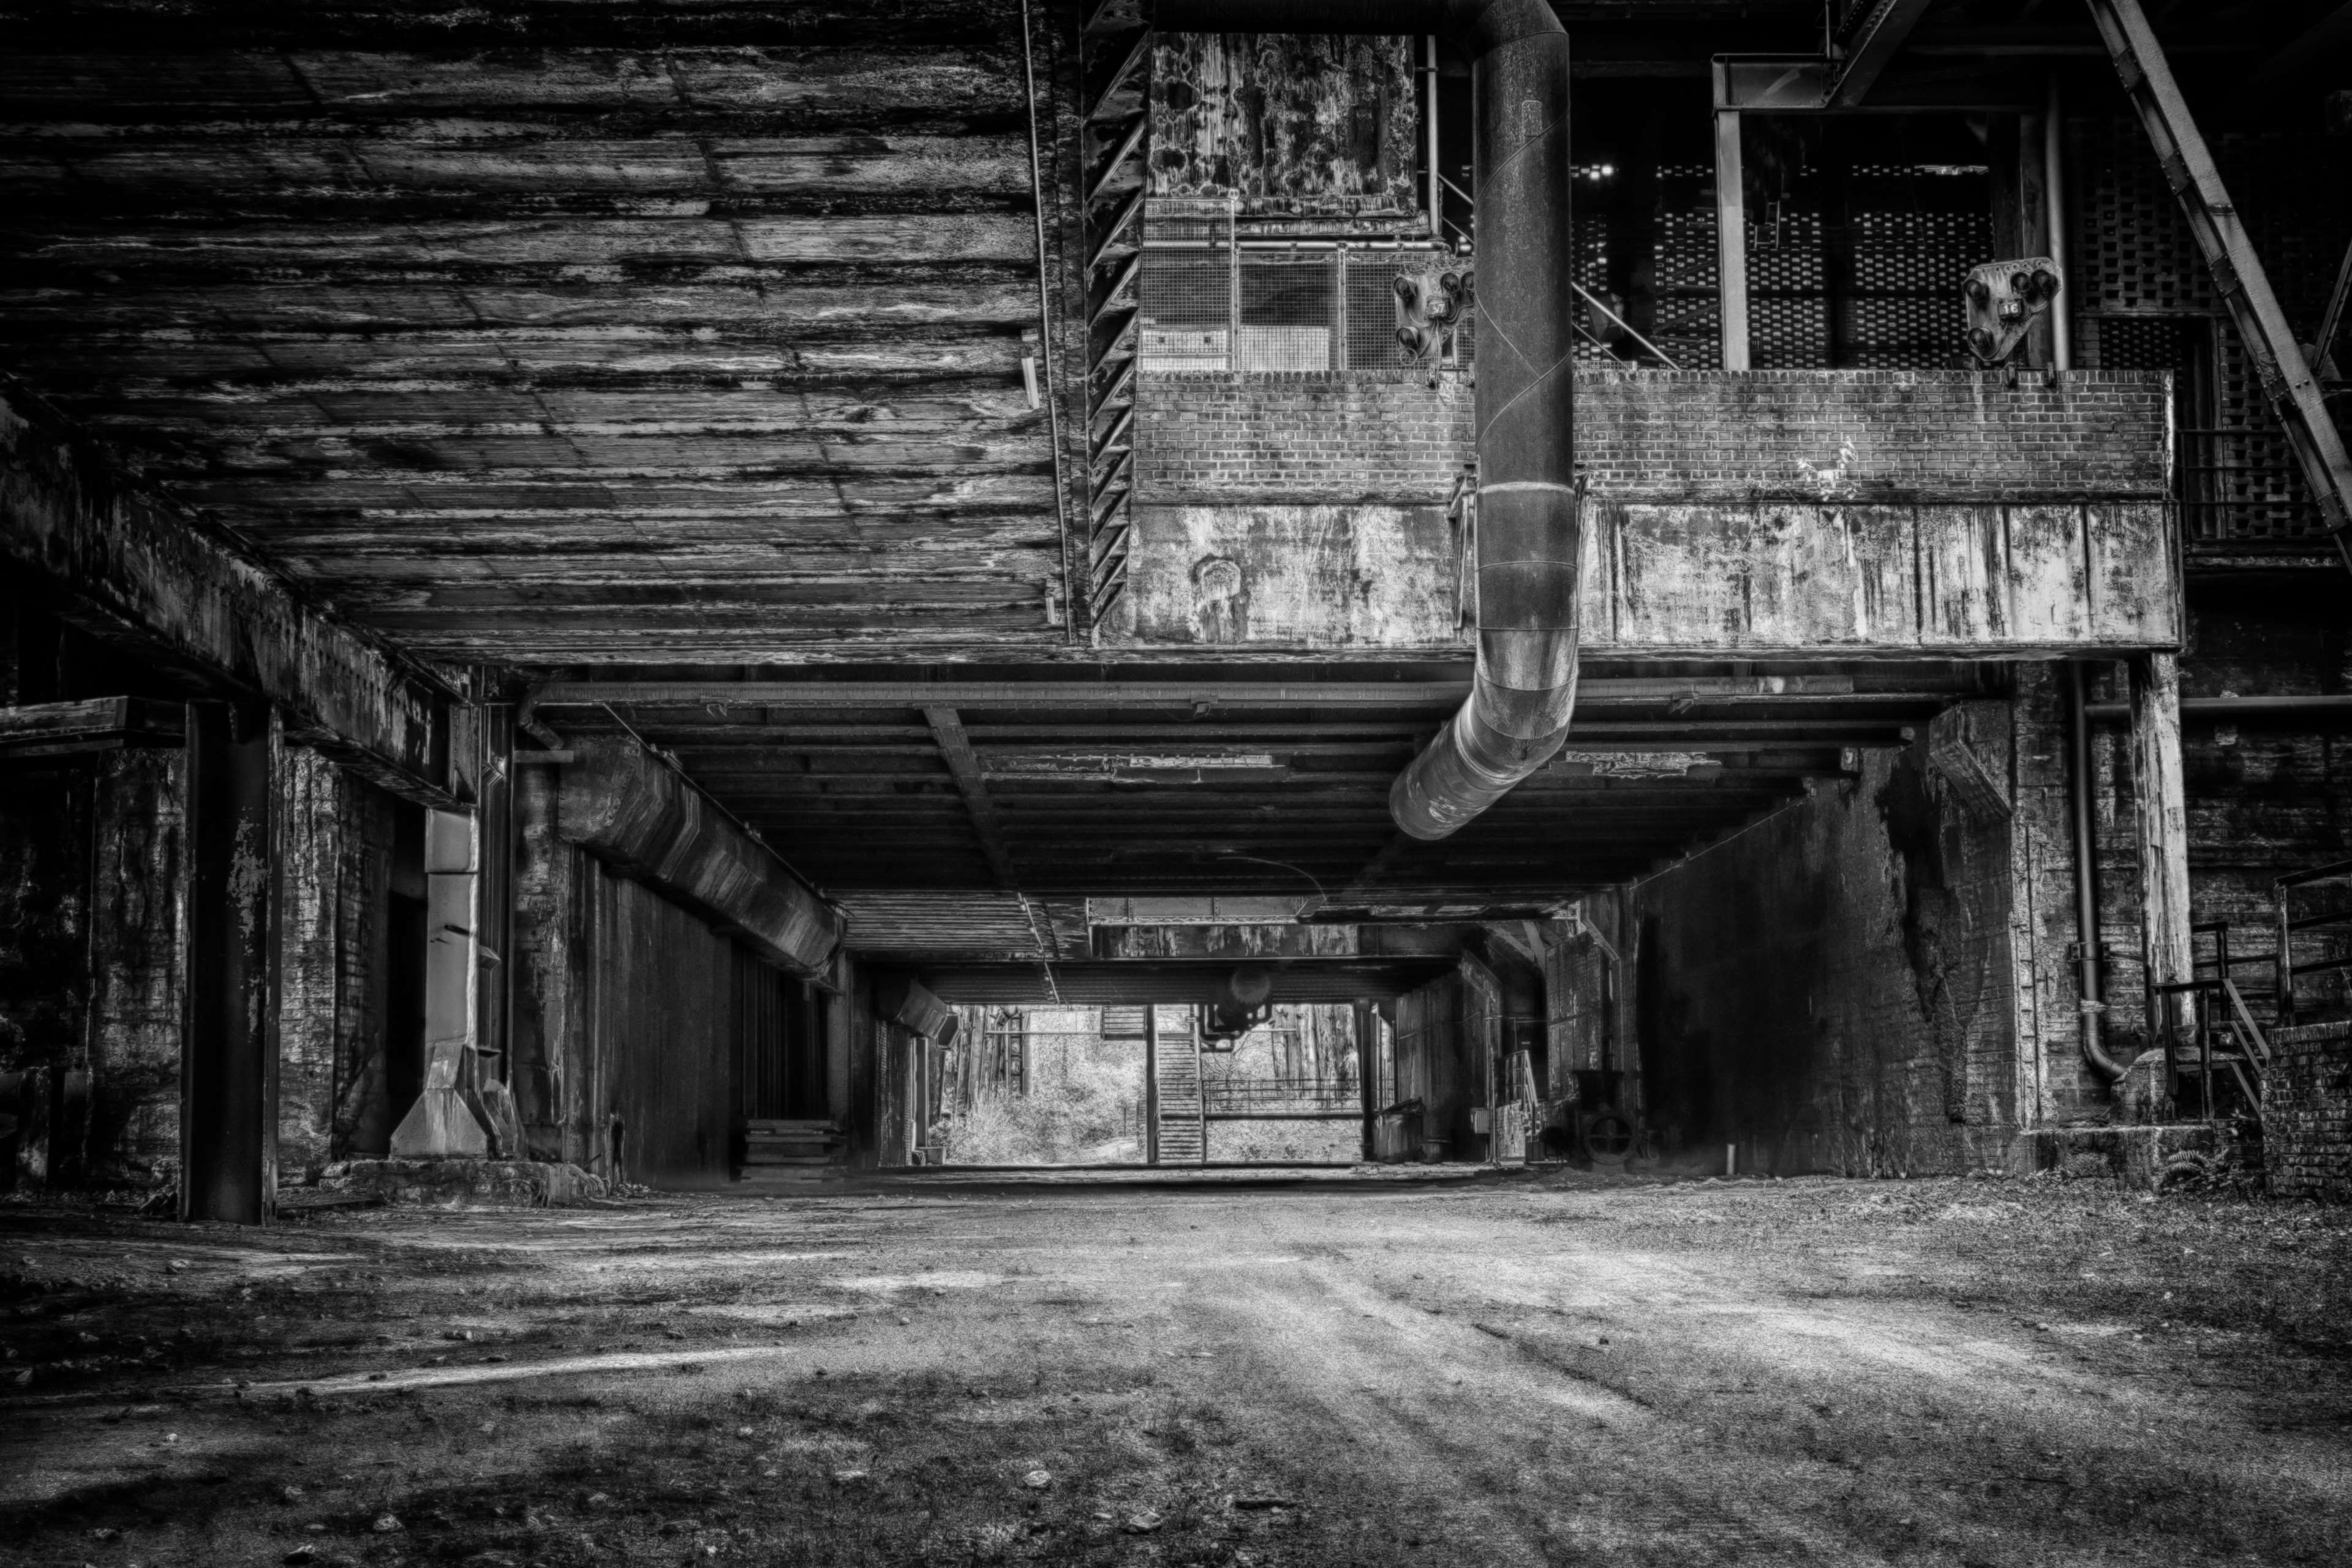 Abandoned Architecture Black And White Black And White Building Decay Empty Factory Indoors In Black And White Wallpaper Industrial Factory Abandoned